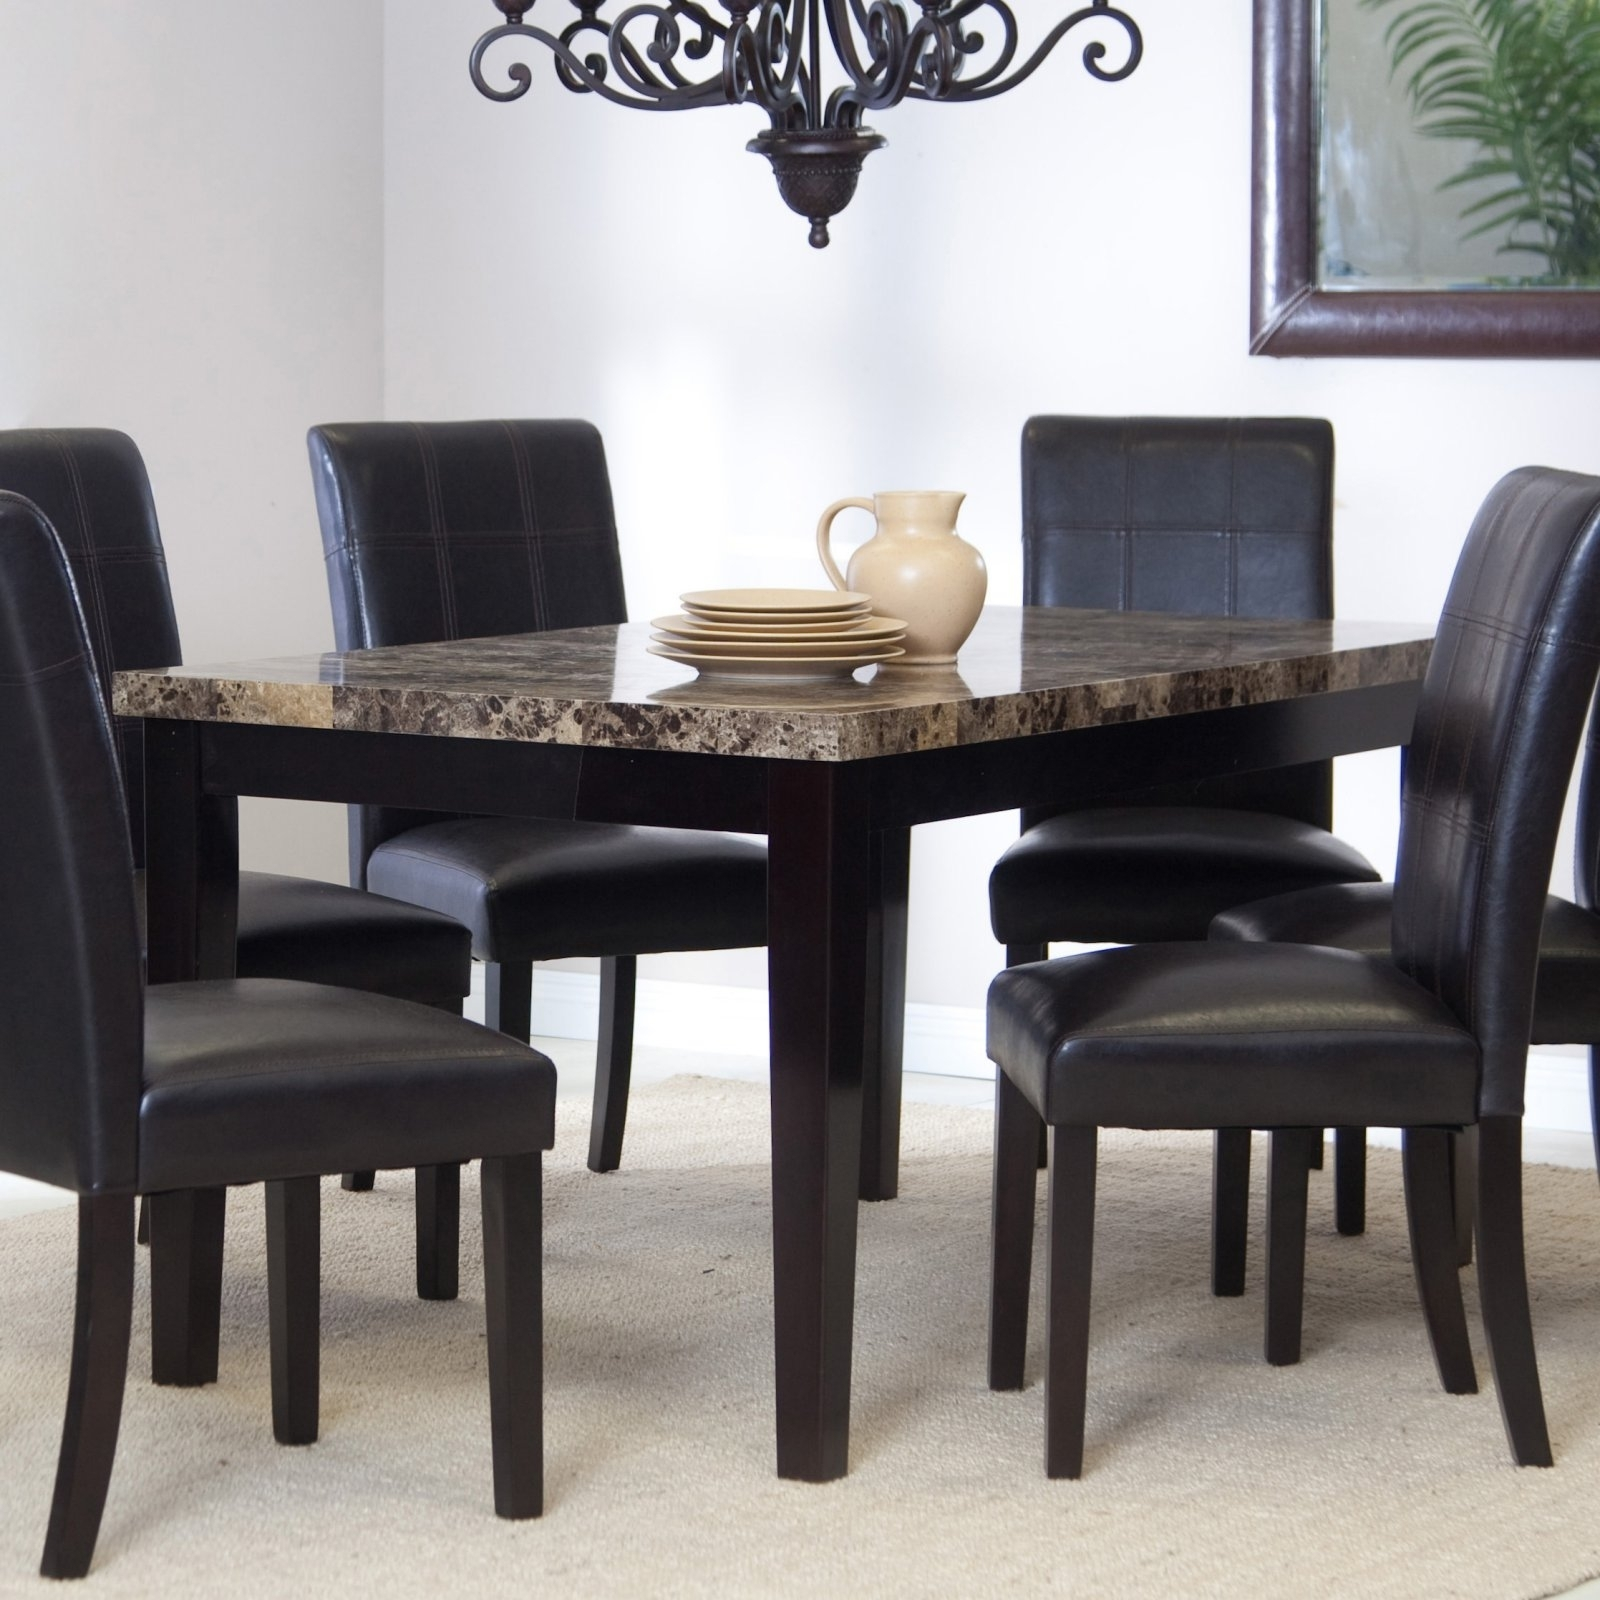 Palazzo Dining Table – Walmart Pertaining To Most Up To Date Palazzo 3 Piece Dining Table Sets (Image 16 of 20)